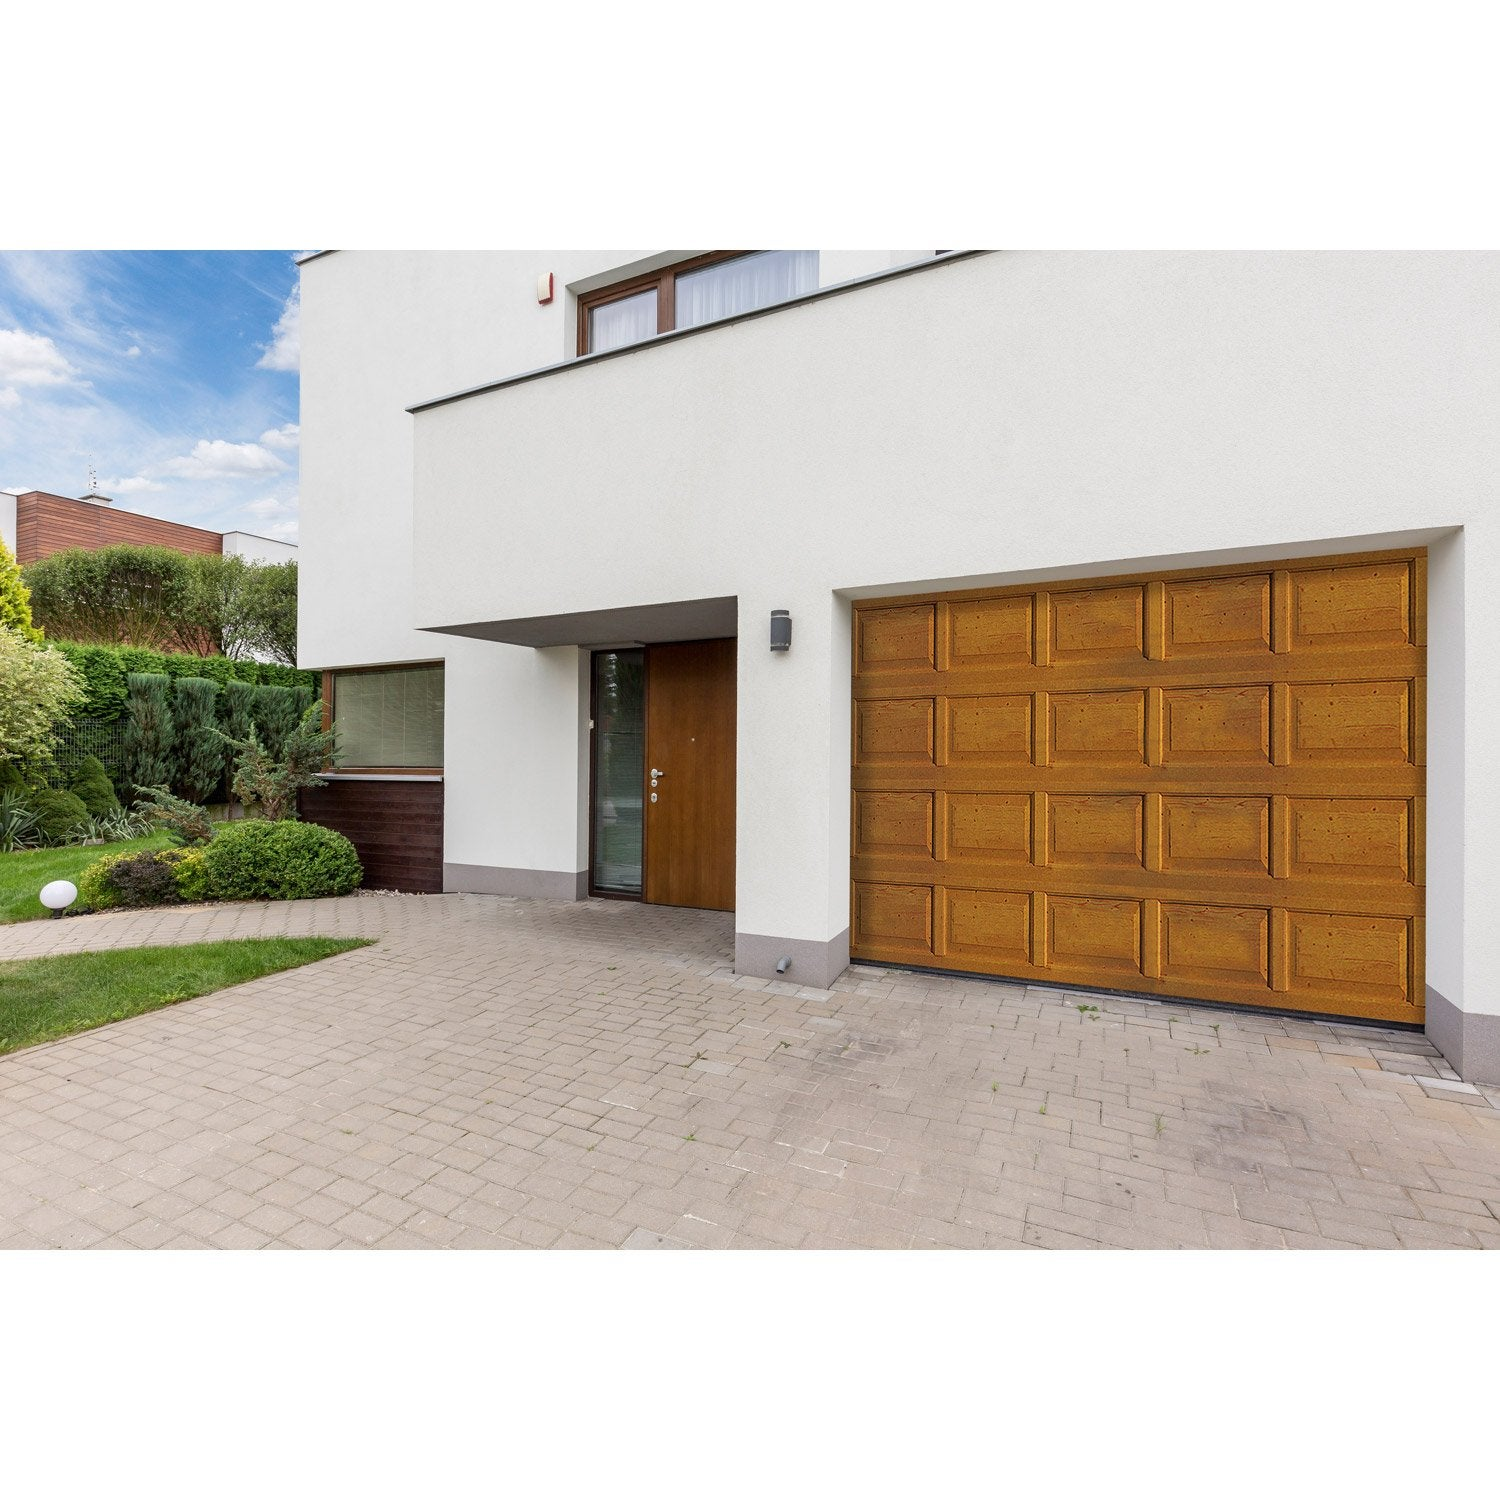 Porte de garage sectionnelle motoris e artens premium h - Leroy merlin porte de garage sectionnelle motorisee ...